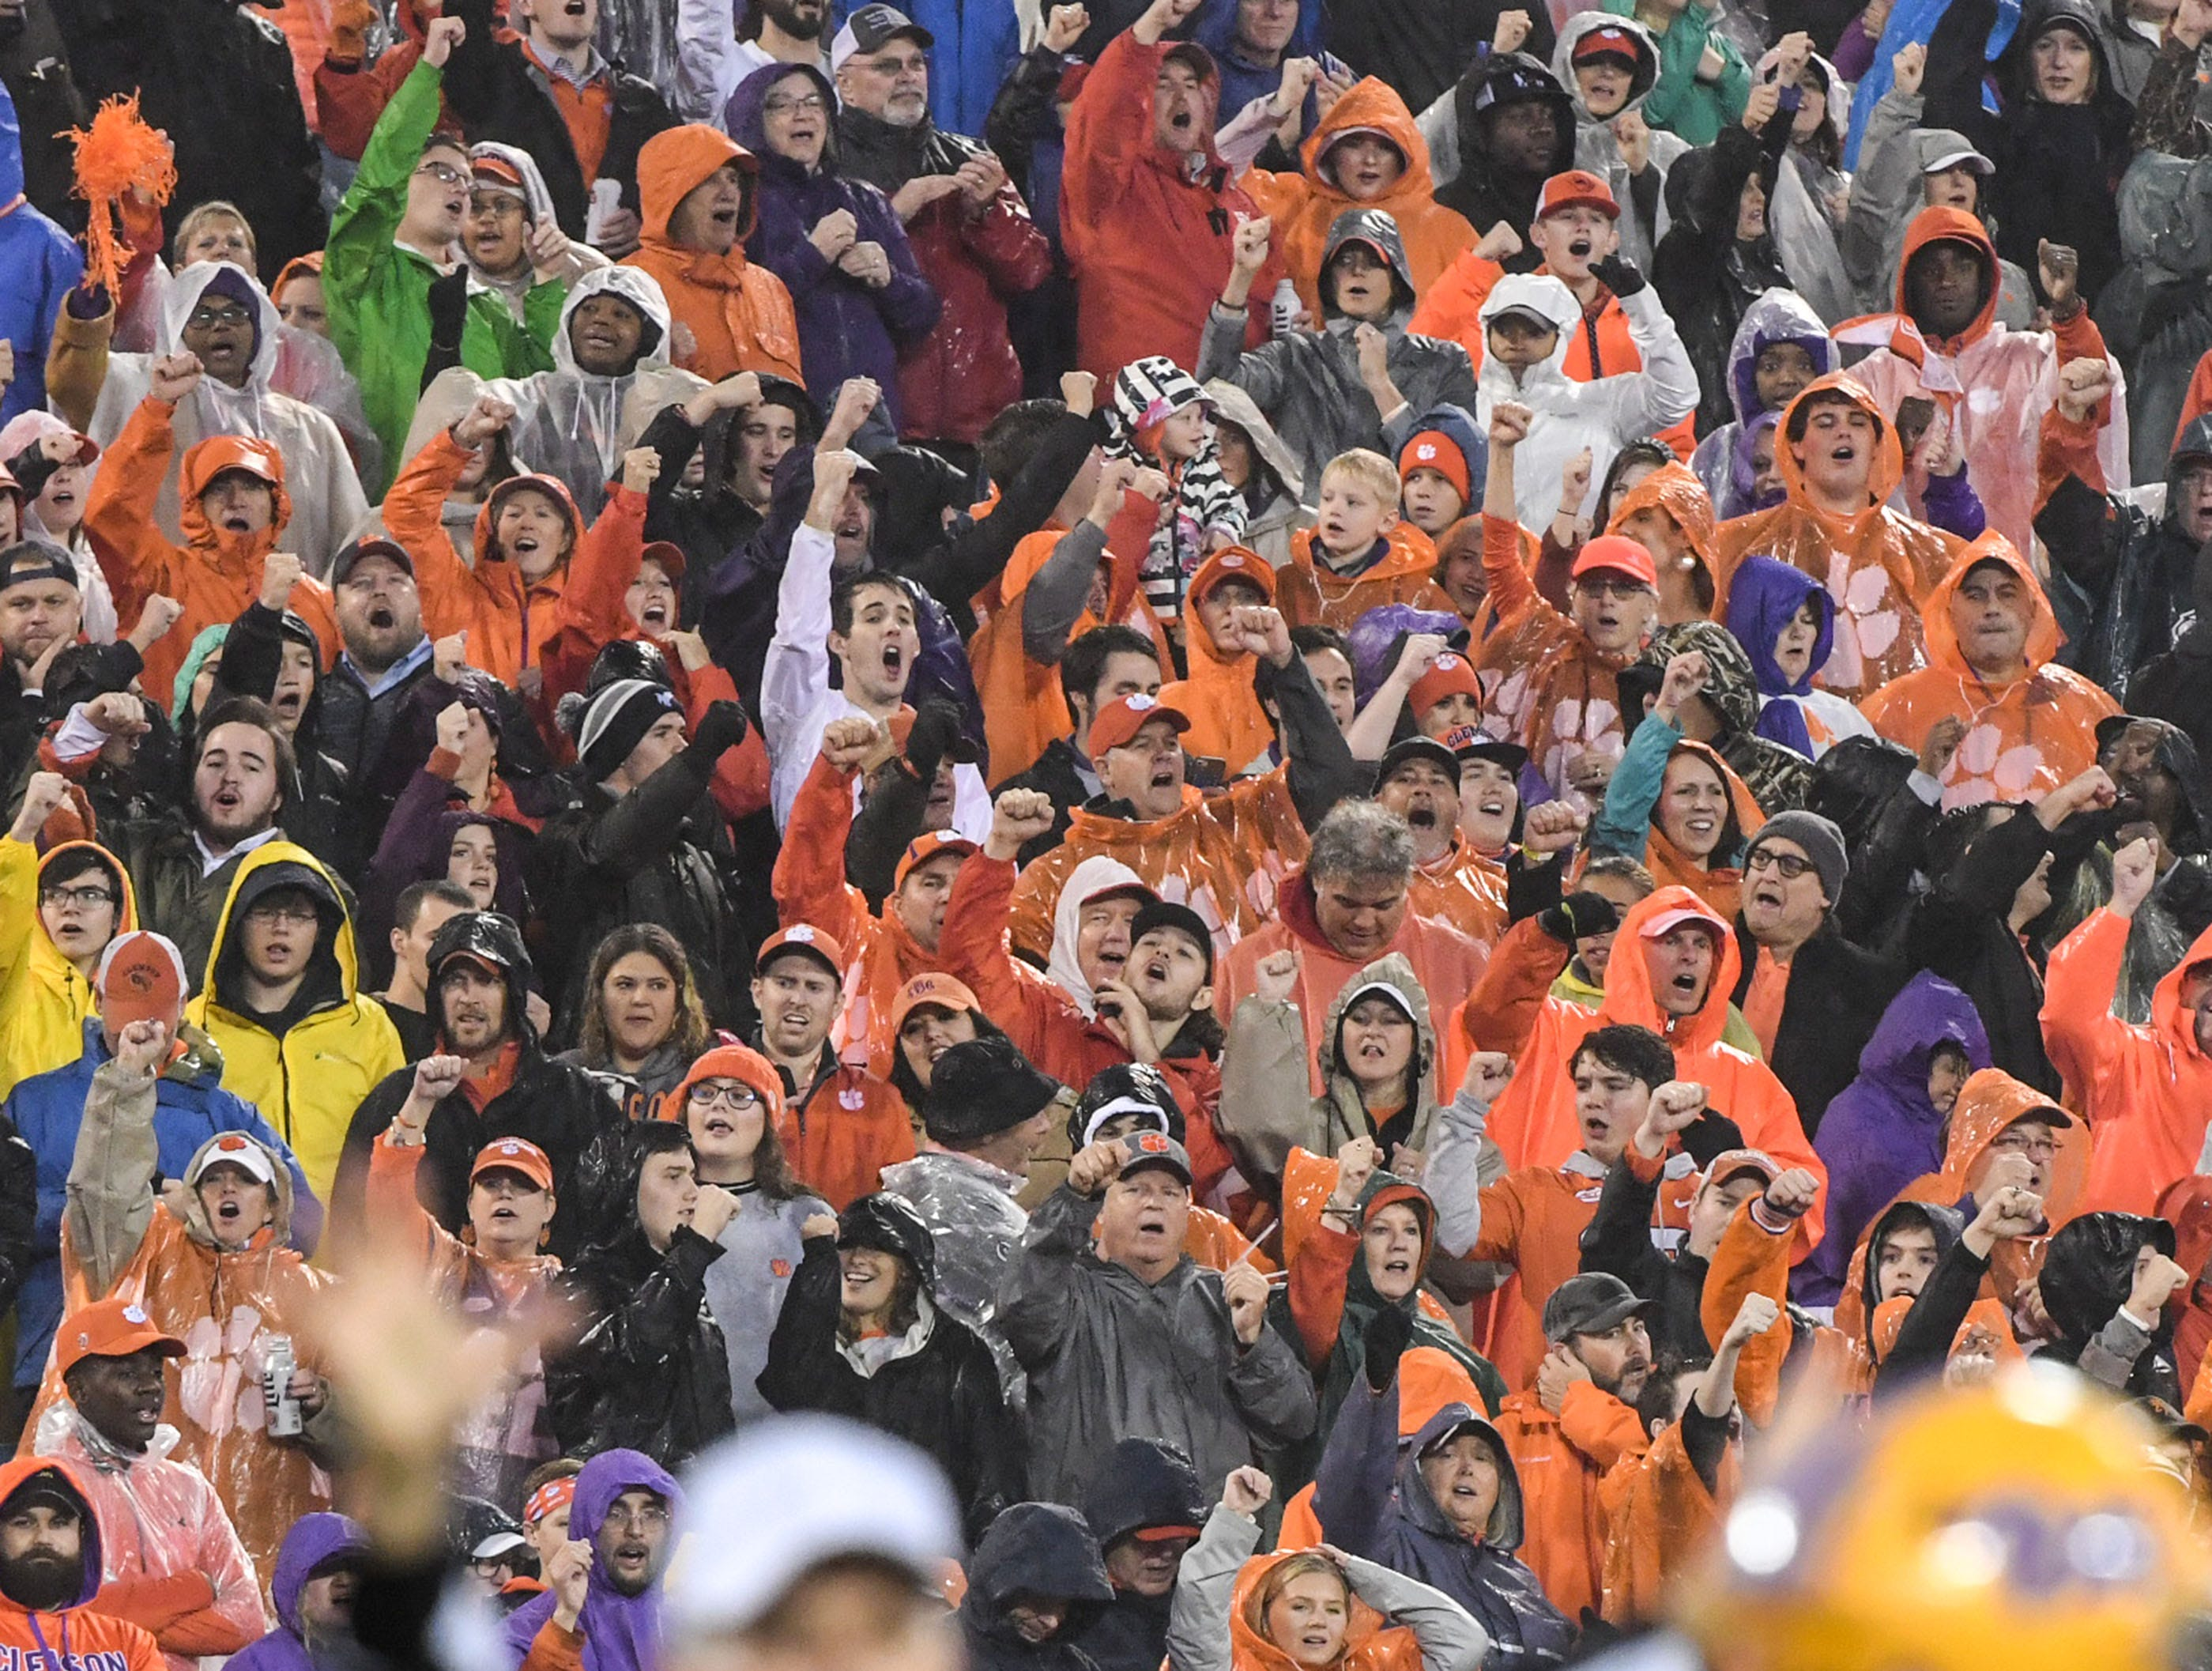 Clemson fans cheer after running back Travis Etienne (9) scored a touchdown during the first quarter of the Dr. Pepper ACC football championship at Bank of America Stadium in Charlotte, N.C. on Saturday, December 1, 2018.